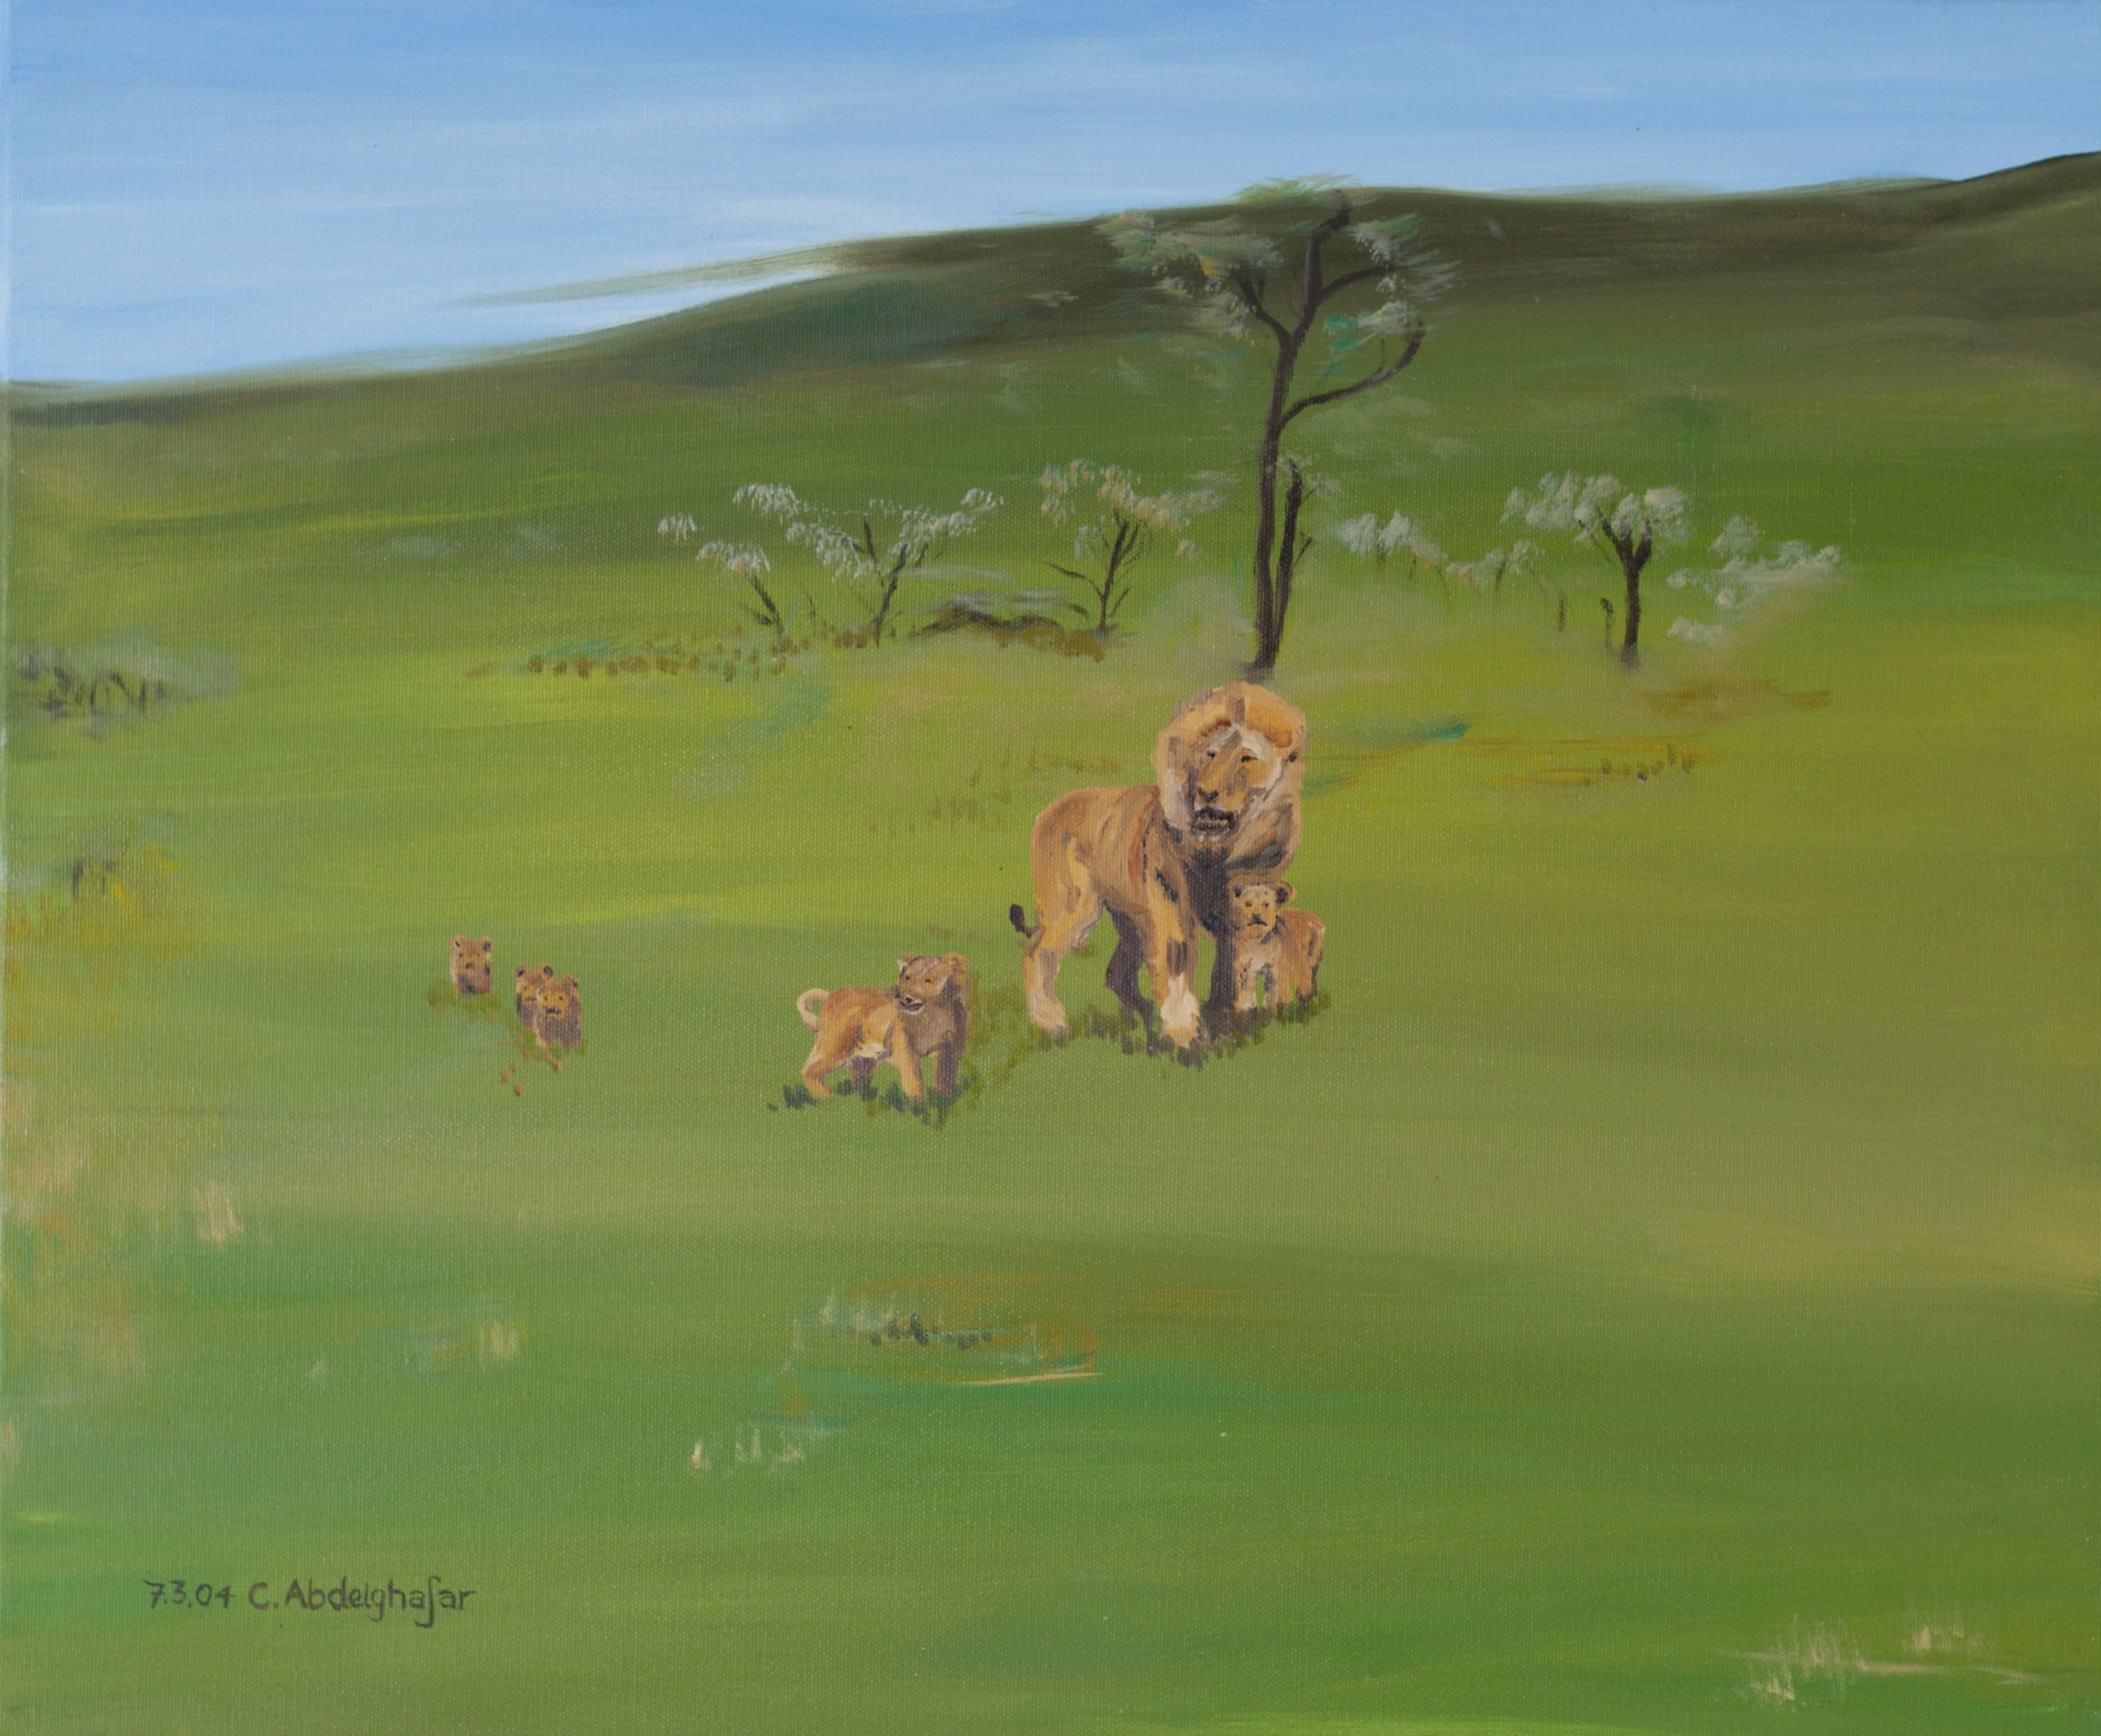 Claudia Luethi Alias Abdelghafar; Lions, 2004, Original Painting Oil, 60 x 50 cm. Artwork description: 241 Oilpainting on canvas from a lionsfamily.  Do you see the lionbabies in the gras.  They are really sweet, arent they The size of the painting is without frame 50 x 60 x 2 cm and with frame 53 x 63 x 3 cm, the painting was finished ...